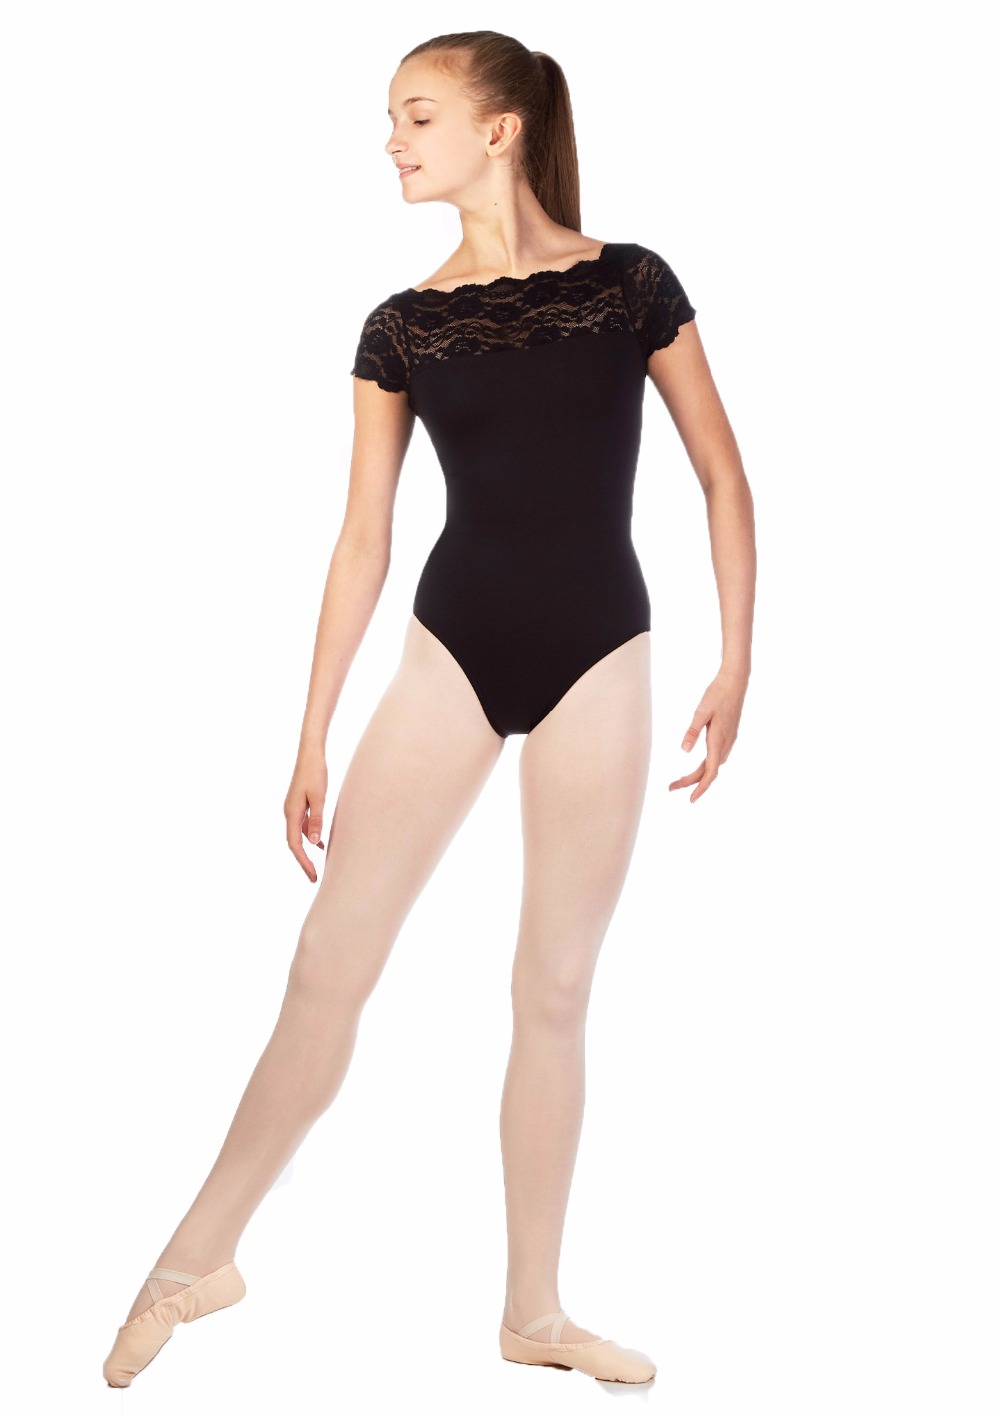 Black spandex dance unitard gymnastics and dancewear - Lzcmsoft Kids Cap Sleeve Black Lace Dance Leotards For Girls Gymnastics Spandex Toddler Dancewear Sport Tops